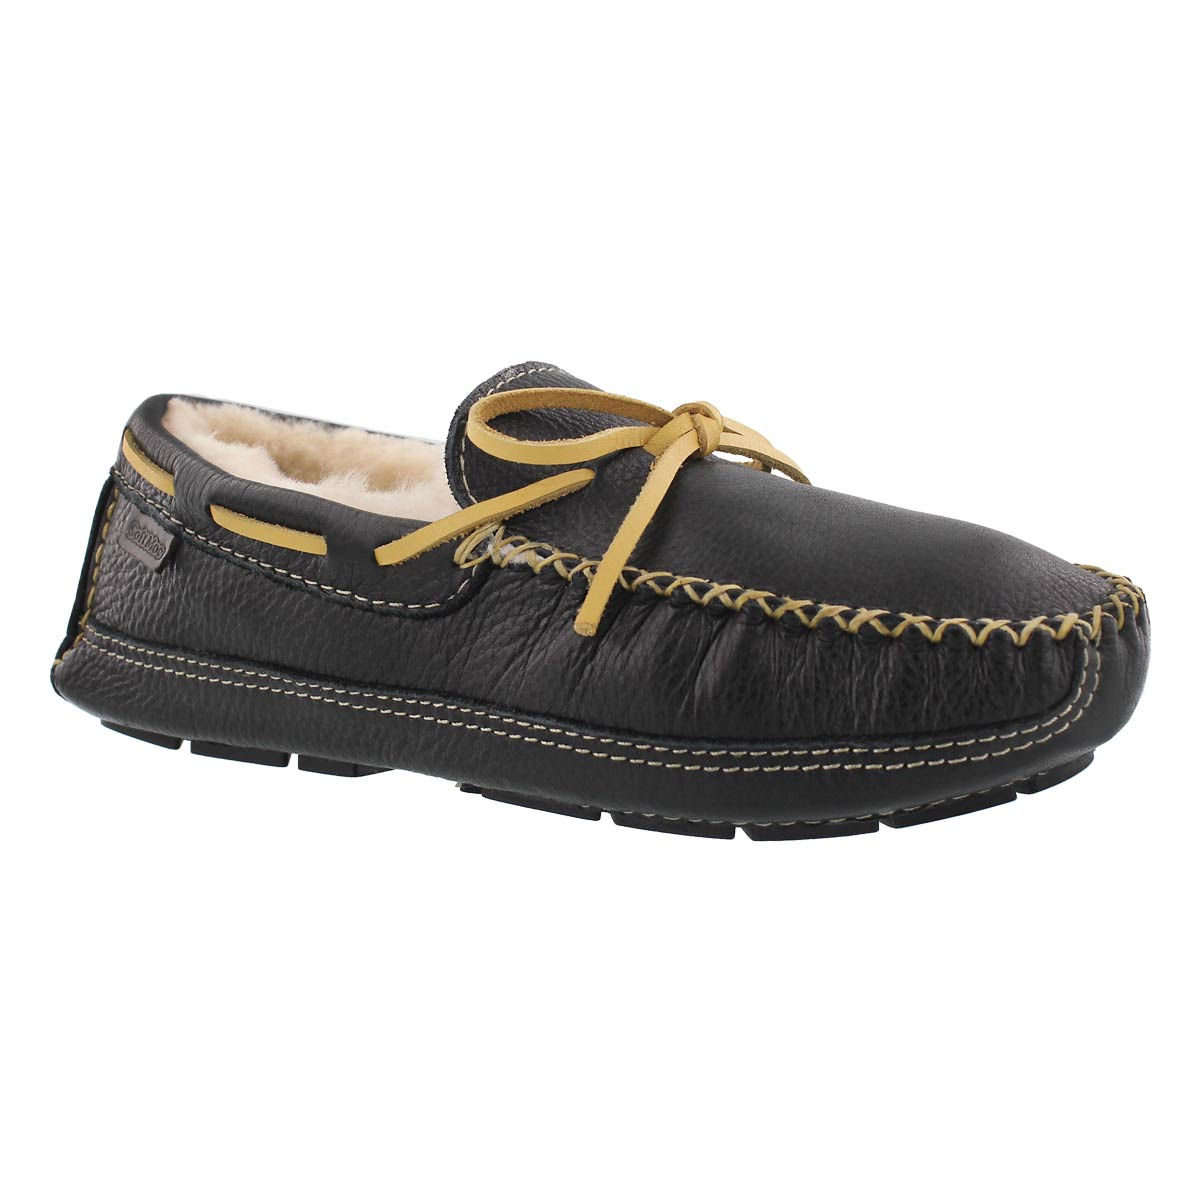 Mns Doyle black leather moccasin